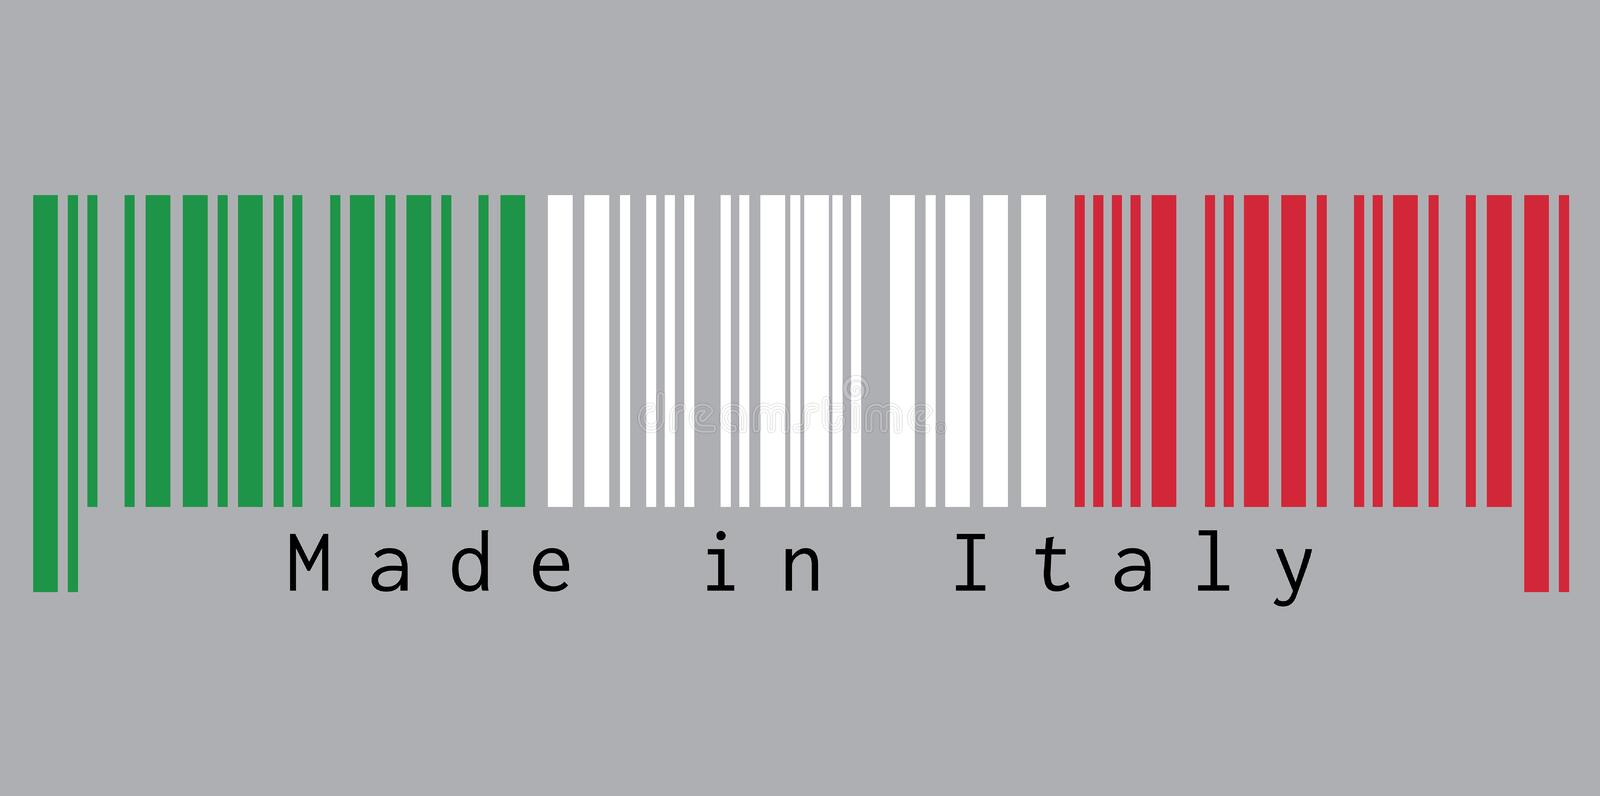 Barcode set the color of Italy flag, green white and red color with text: Made in Italy. stock illustration